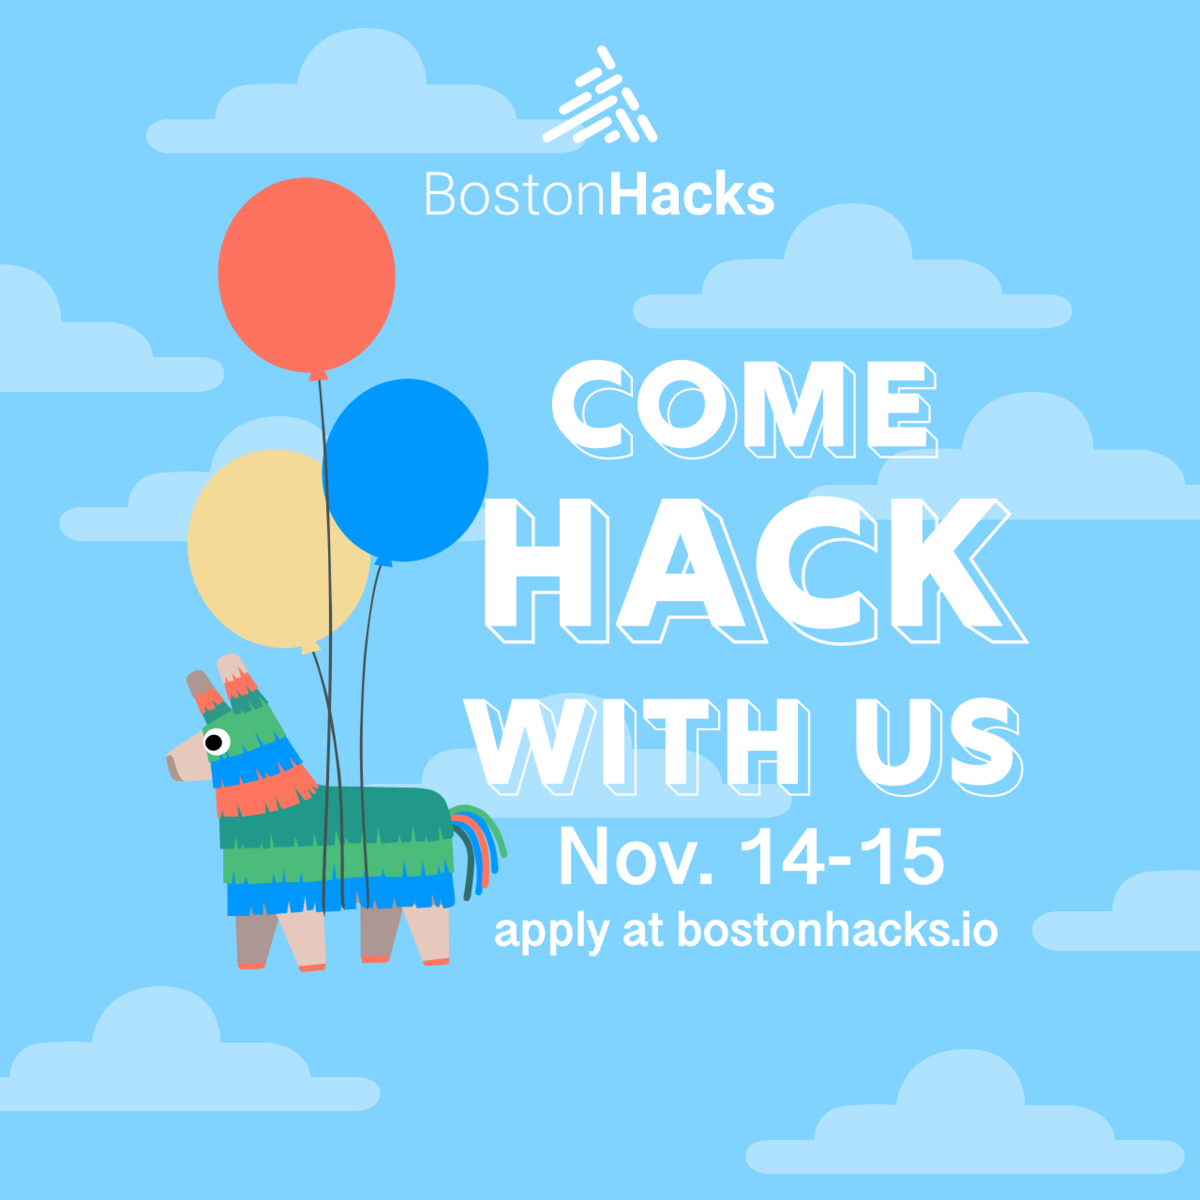 BostonHacks 2020